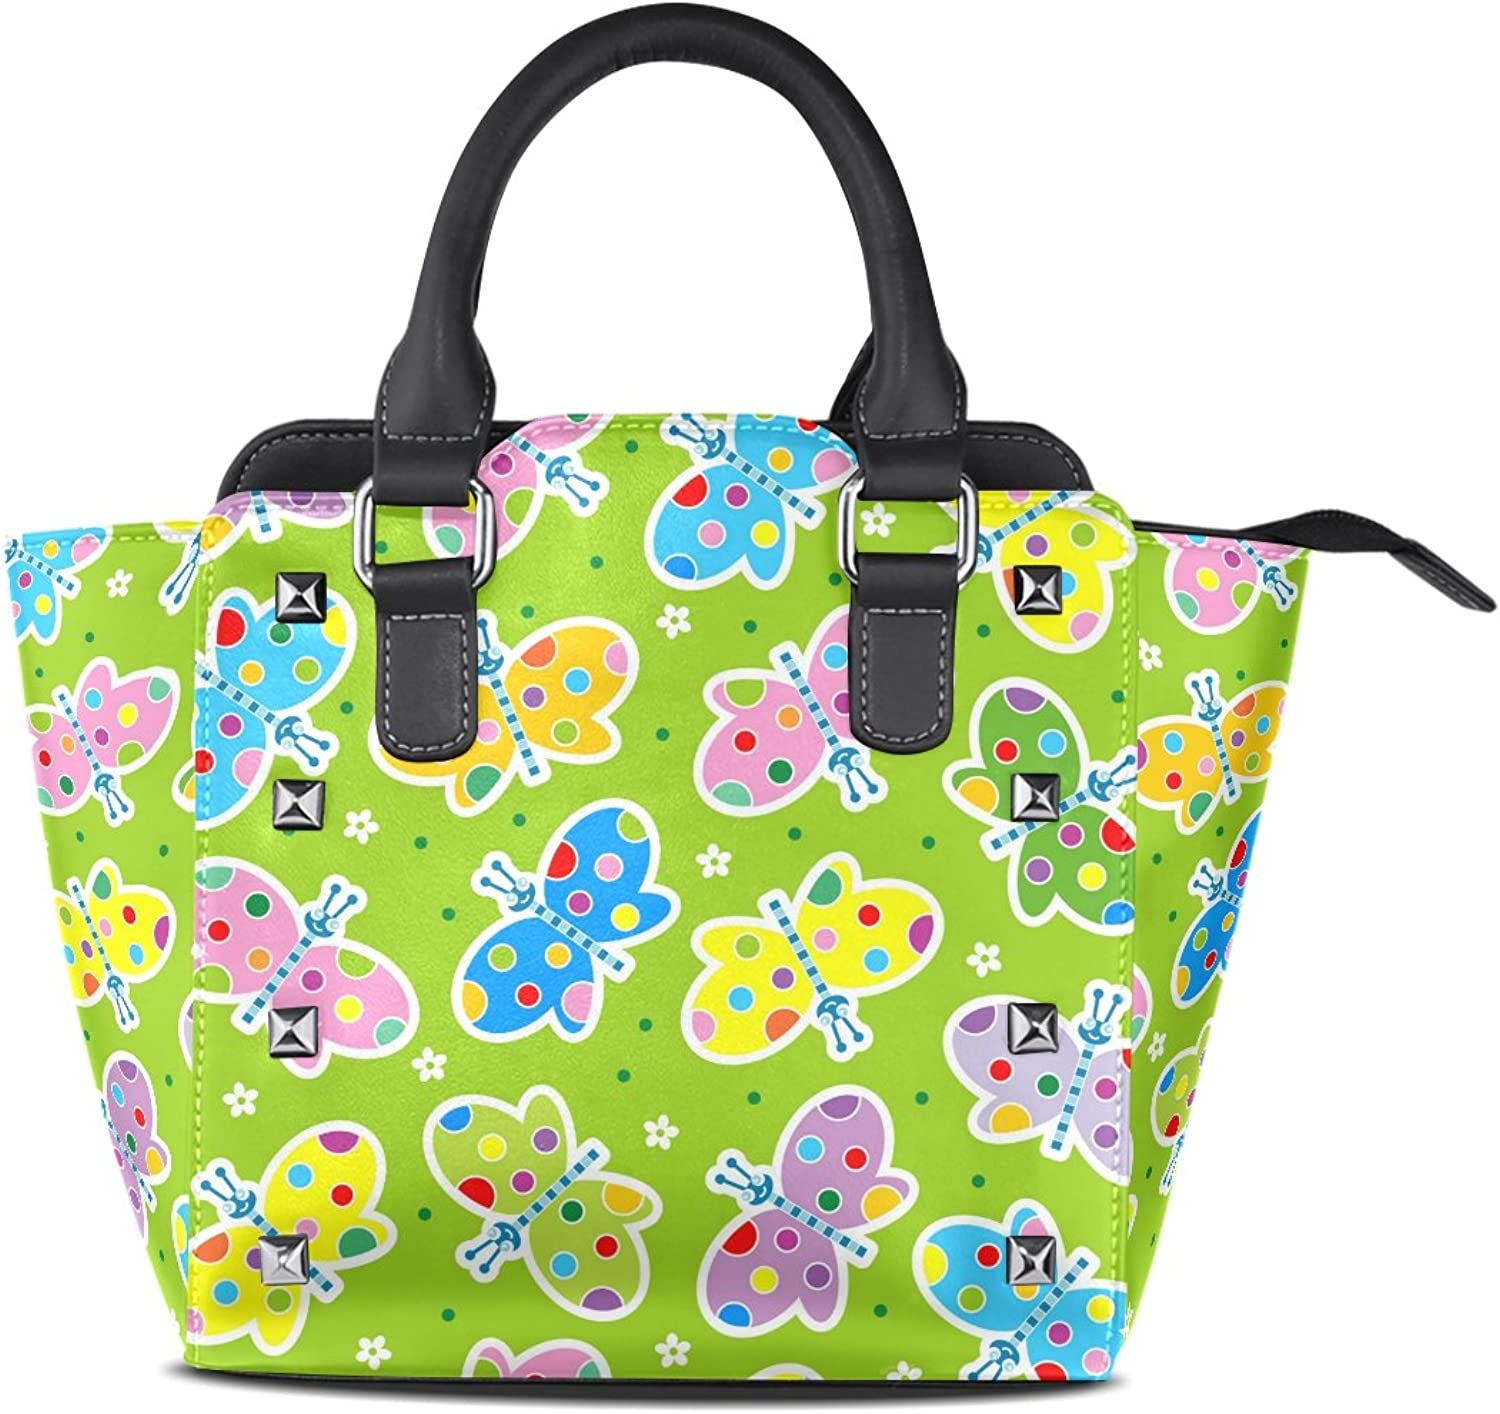 Sunlome Cute colorful Butterfly Print Women's Leather Tote Shoulder Bags Handbags